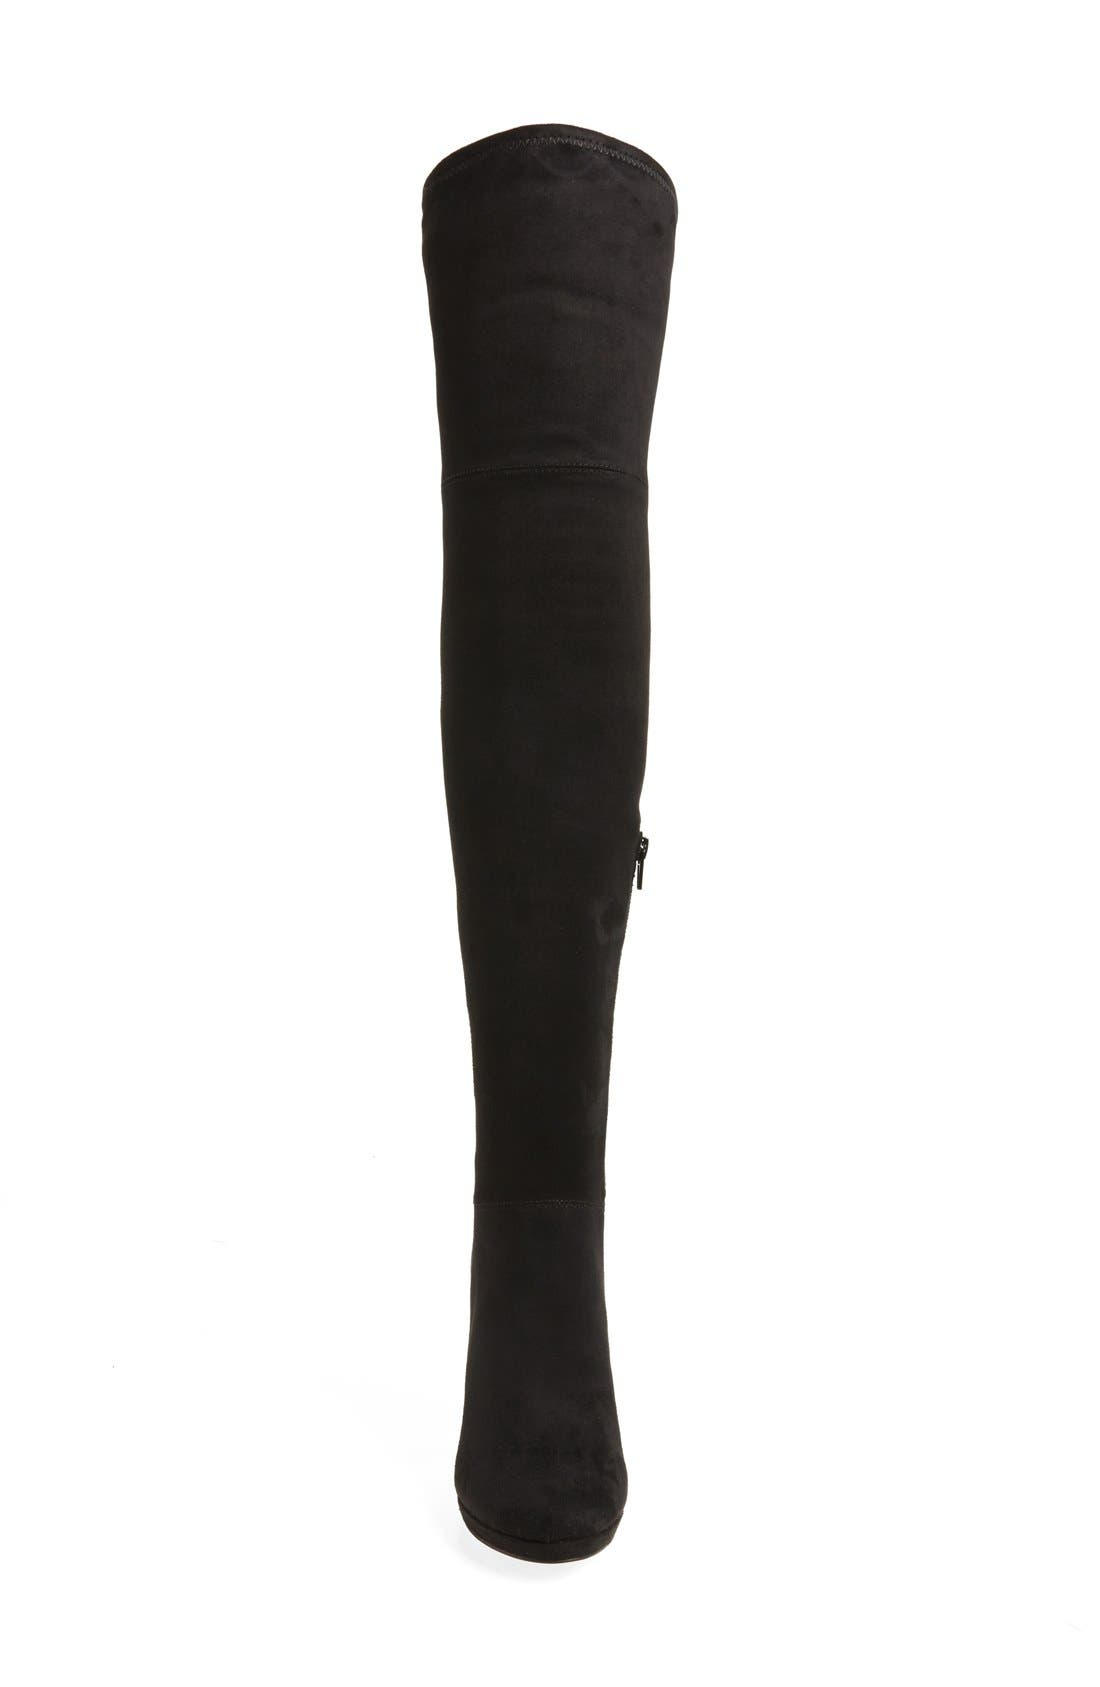 'Polomia' Platform Over the Knee Boot,                             Alternate thumbnail 3, color,                             001